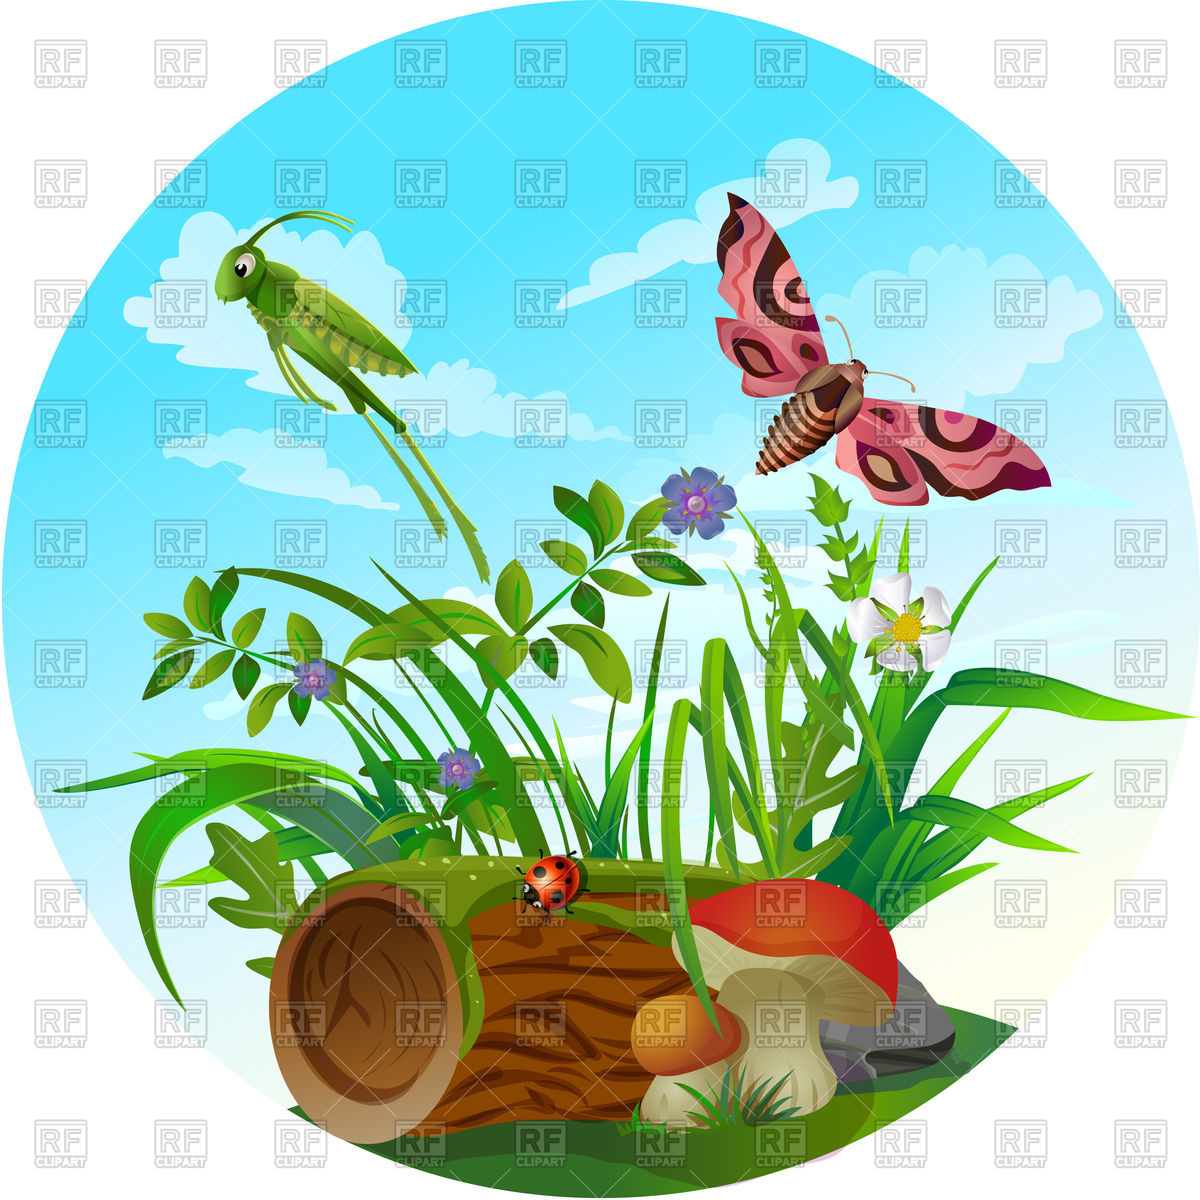 free nature clipart at getdrawings com free for personal use free rh getdrawings com free nature clipart pictures free nature clipart black and white